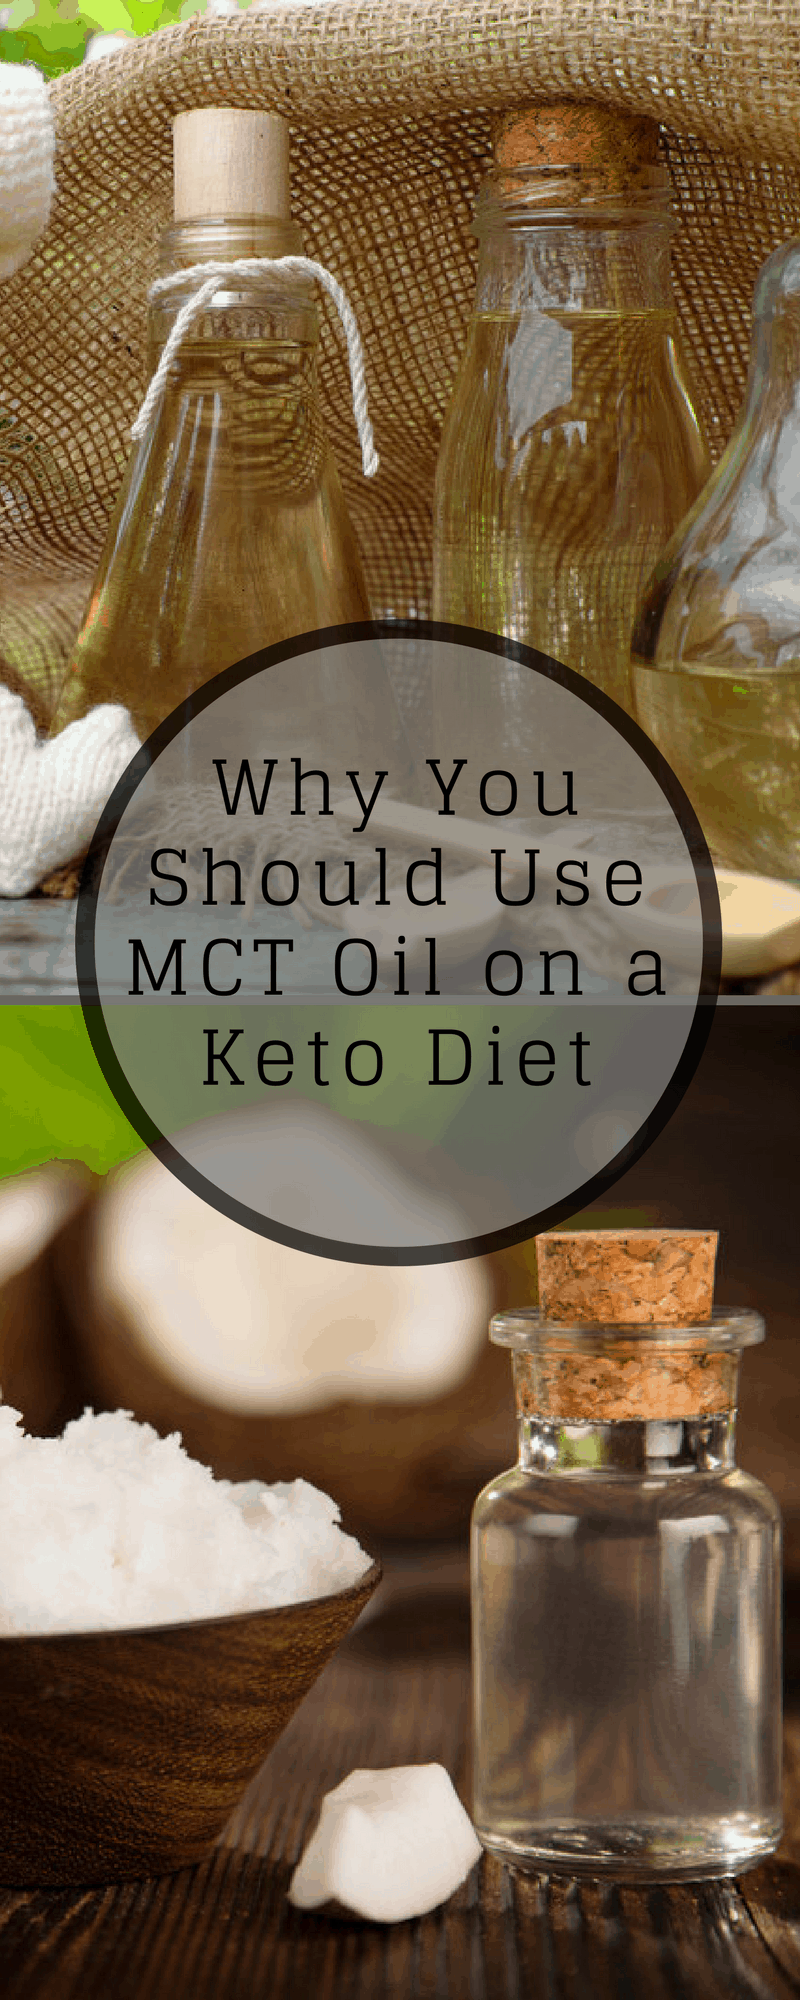 Why You Should Use MCT Oil on a Keto Diet